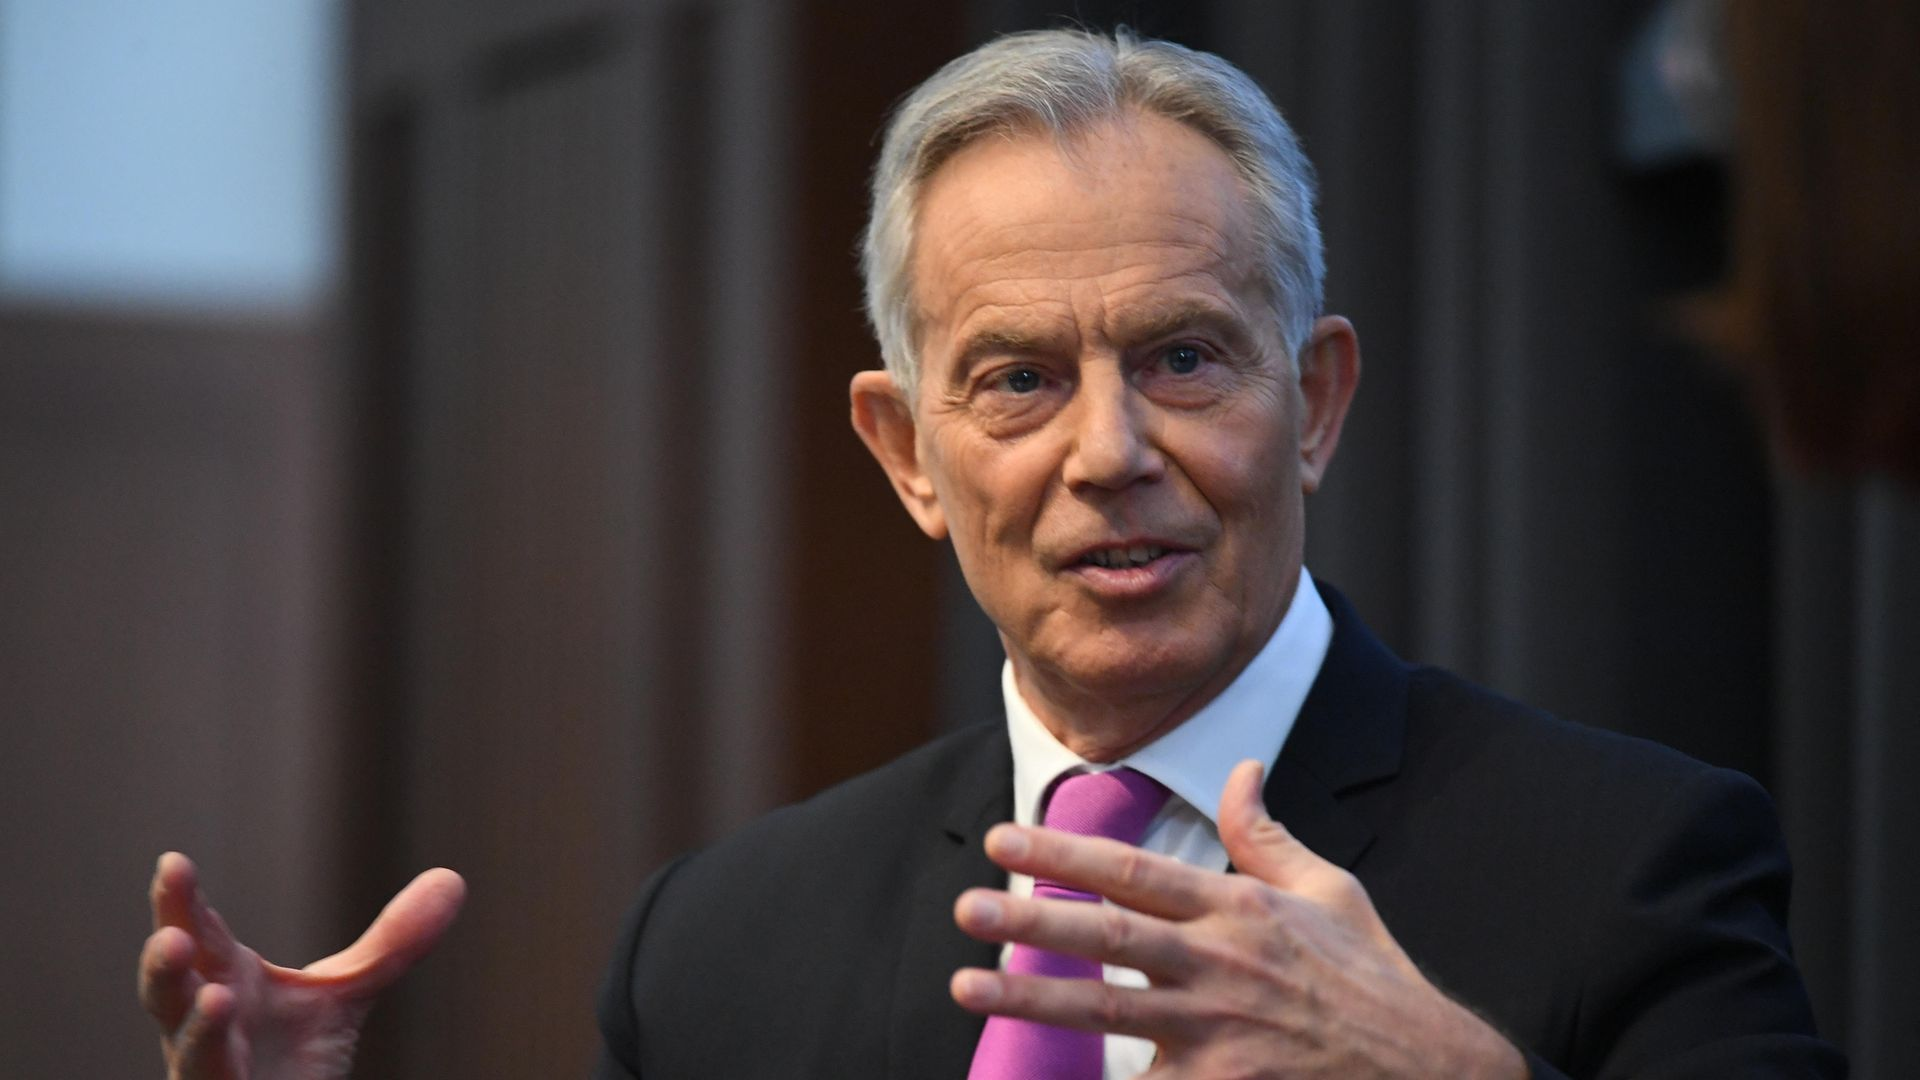 Former prime minister Tony Blair, who has said he did not enjoy being the prime minister due to the huge responsibility it entailed - Credit: PA